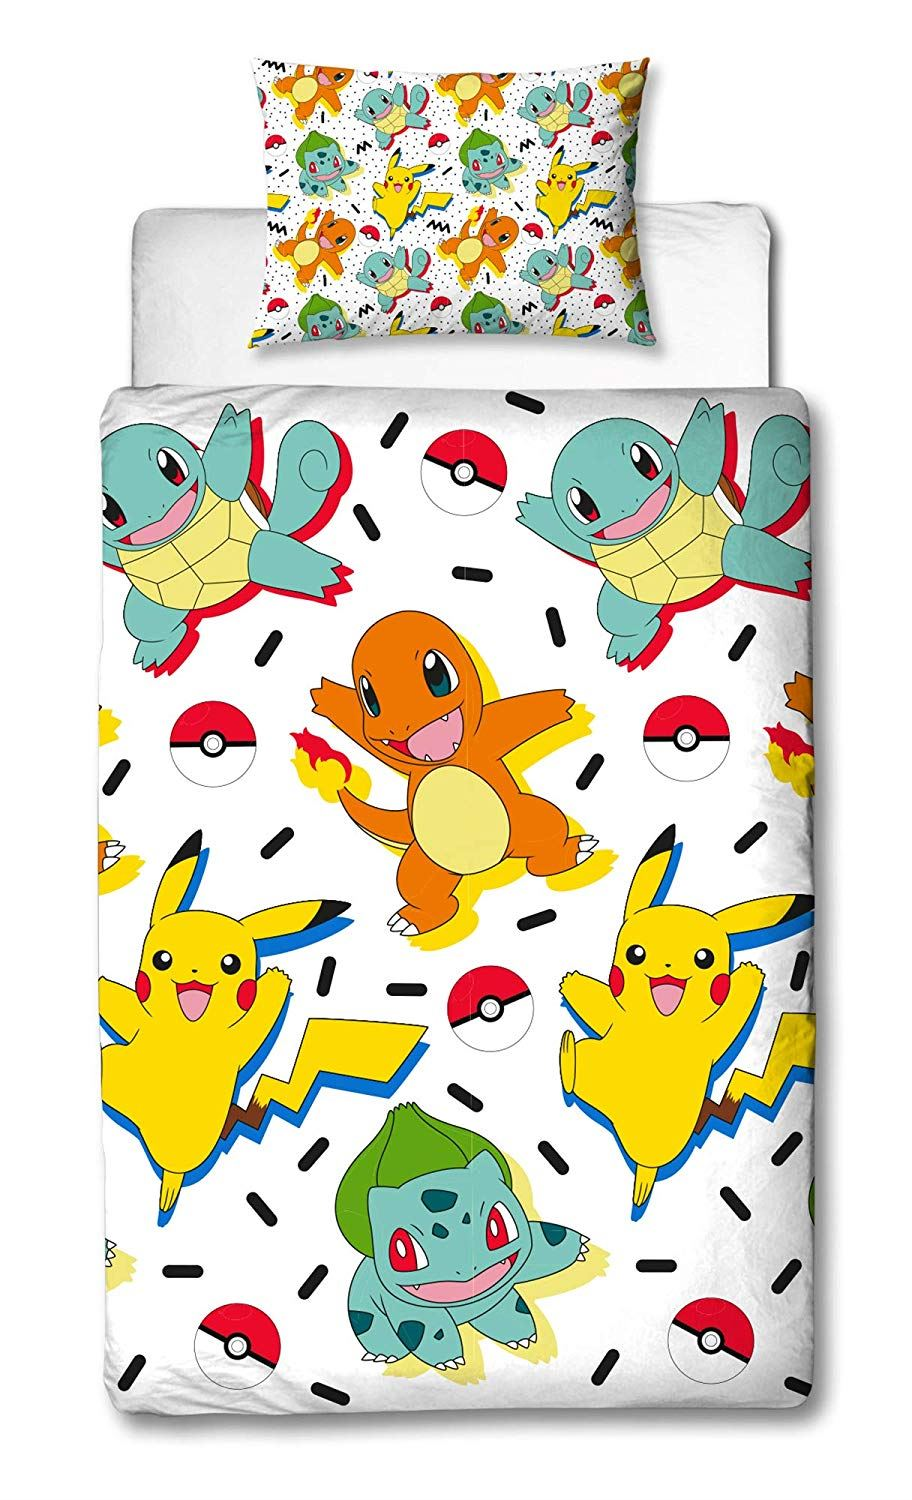 Official-Pokemon-Licensed-Duvet-Covers-Single-Double-Pikachu-Bedding-Gaming thumbnail 32